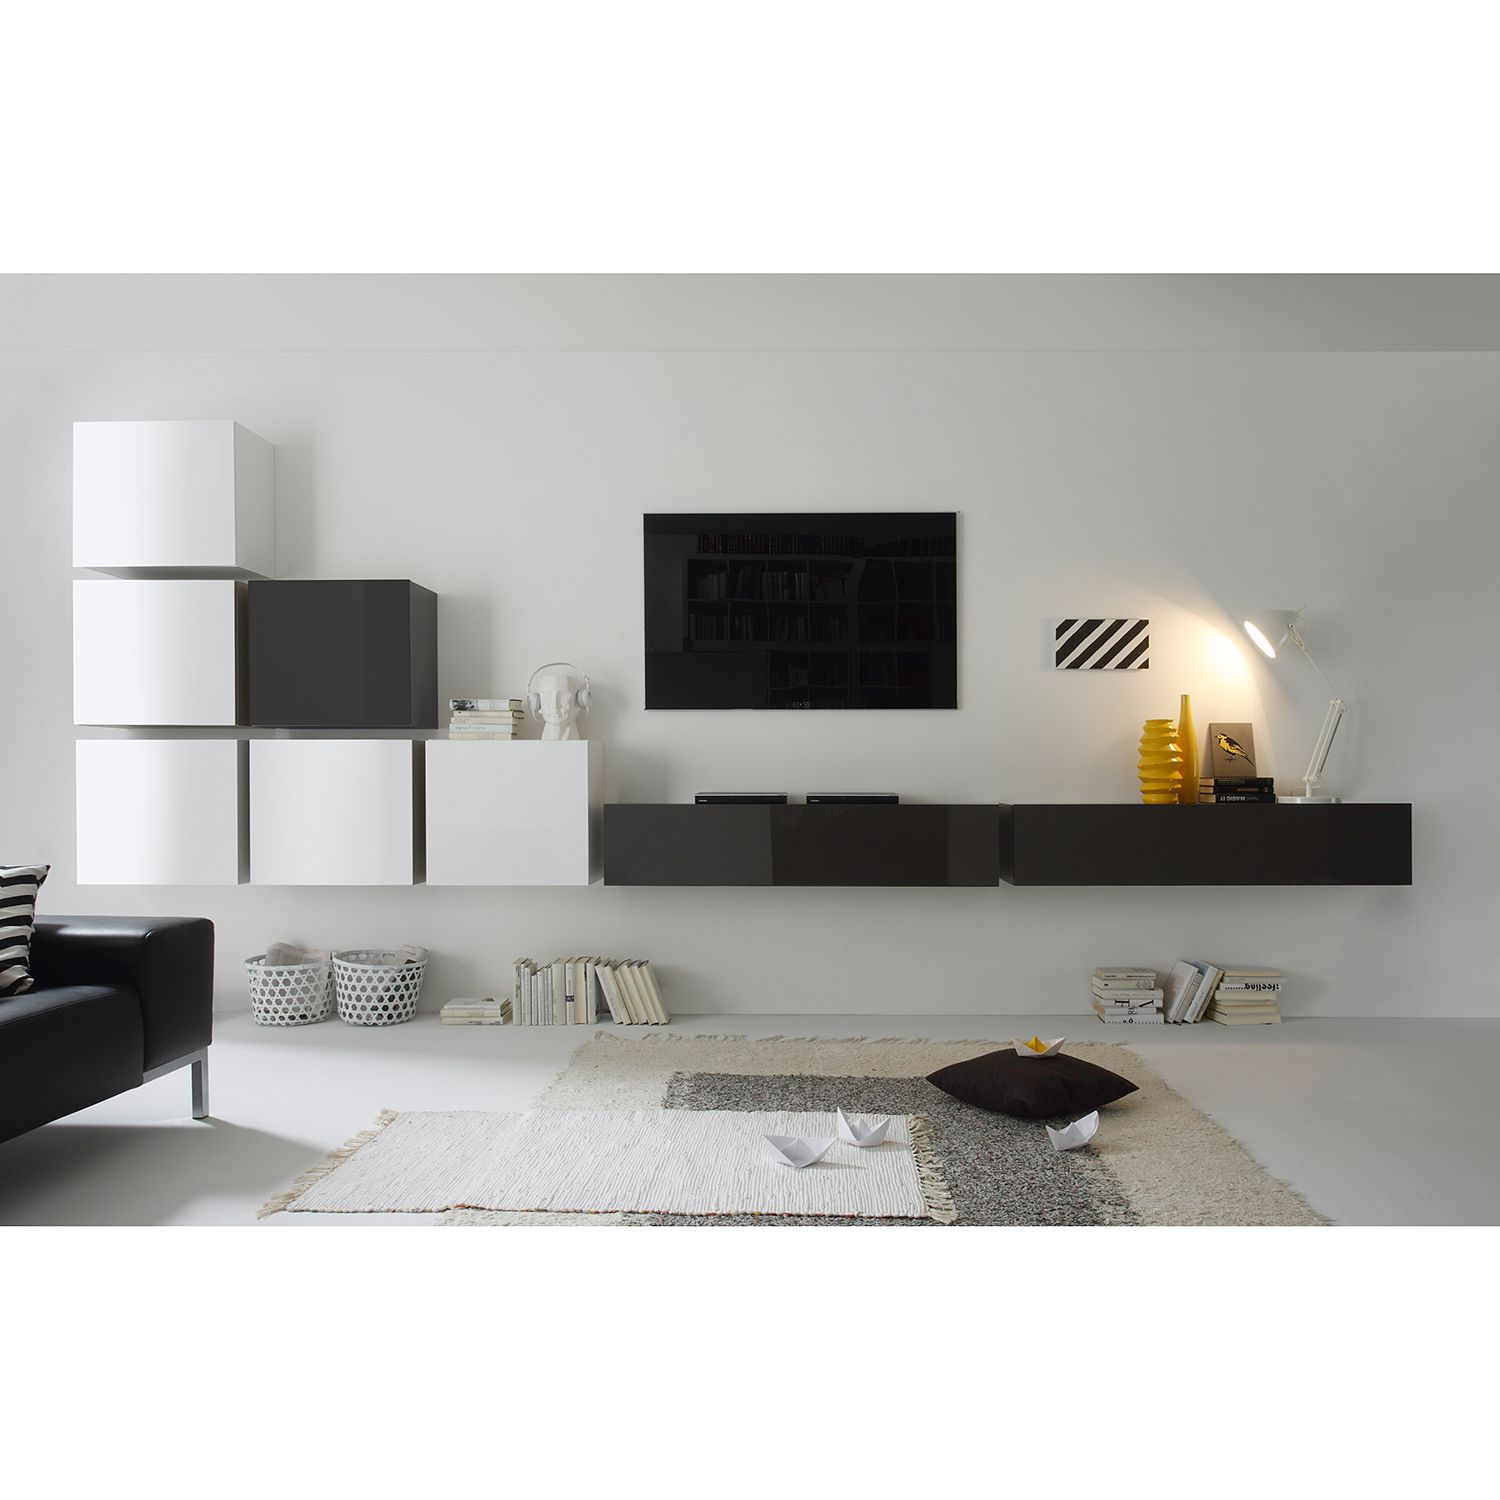 wohnwand cube lc ii 8 teilig hochglanz wei hochglanz anthrazit lc mobili bestellen. Black Bedroom Furniture Sets. Home Design Ideas